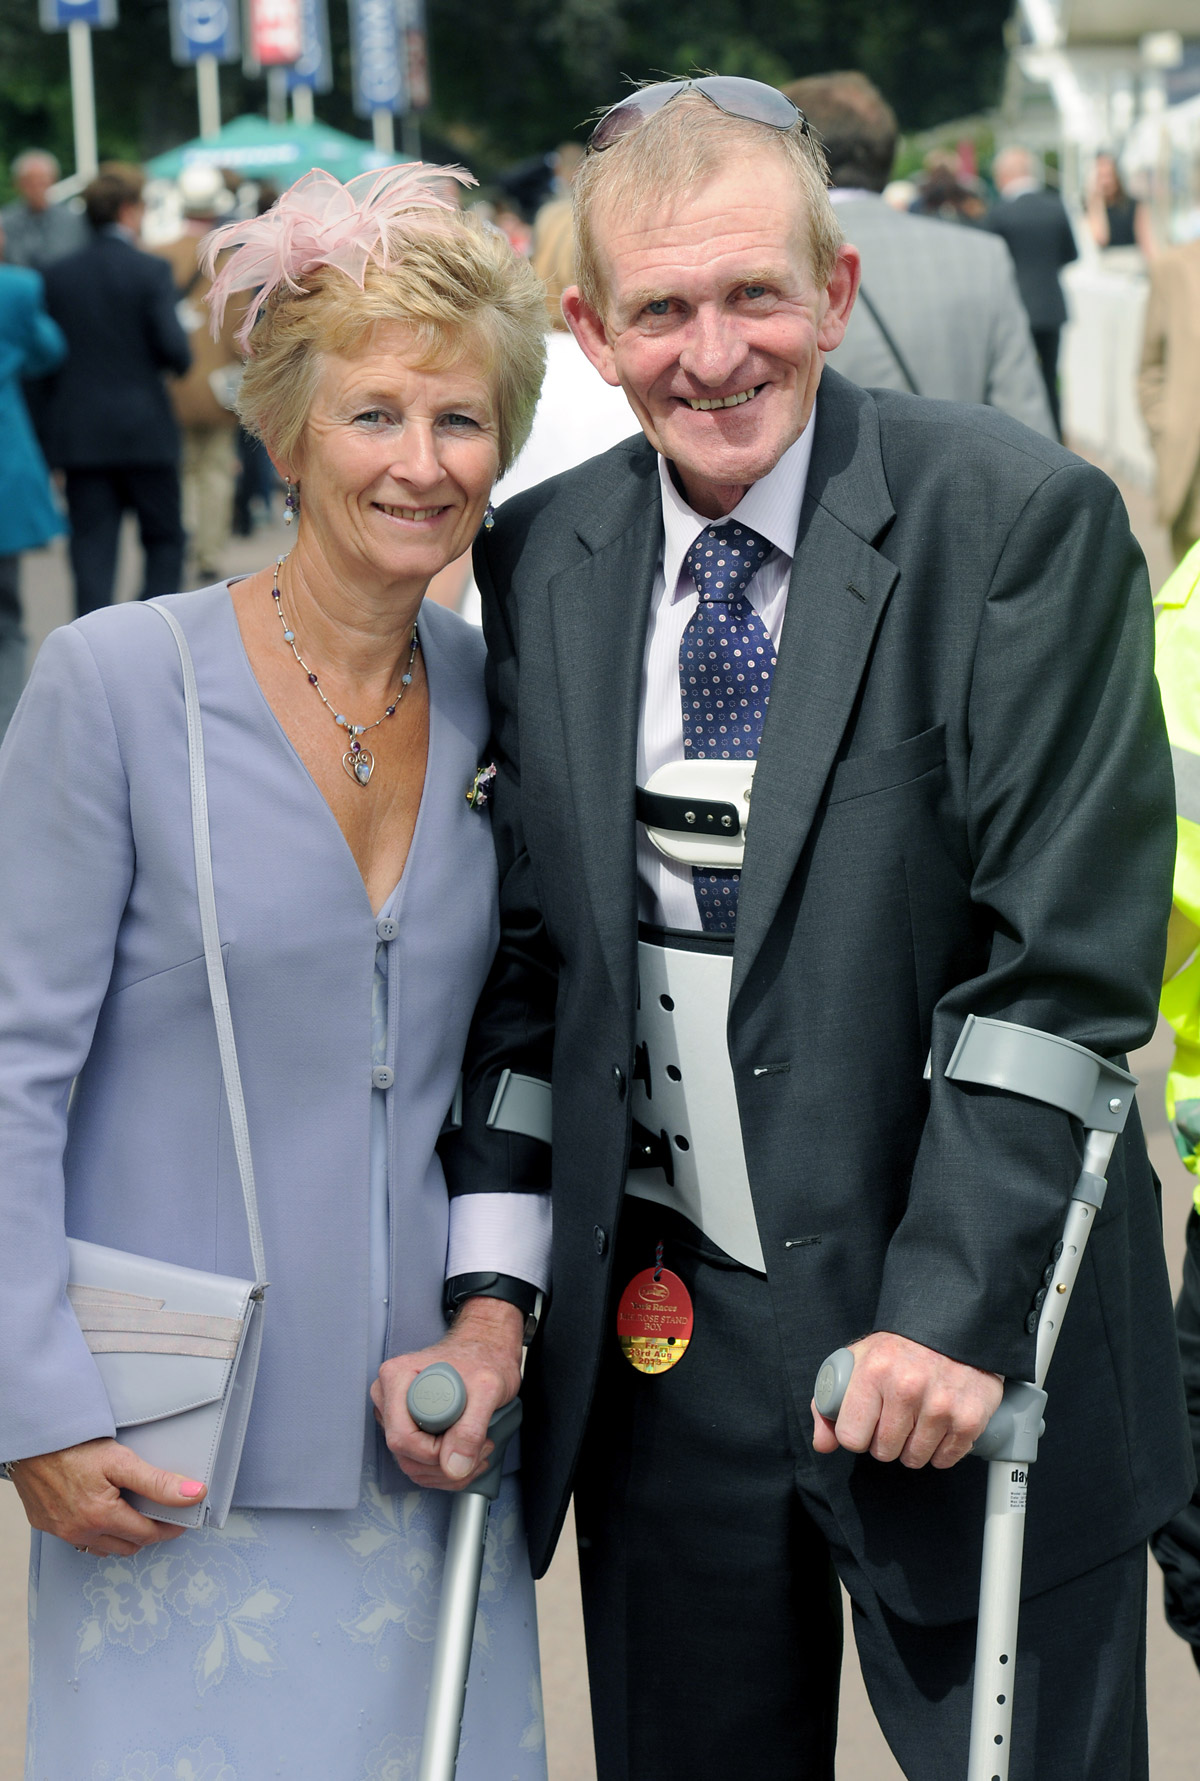 Tom and his partner Wendy Barry at York Races three months after the accident